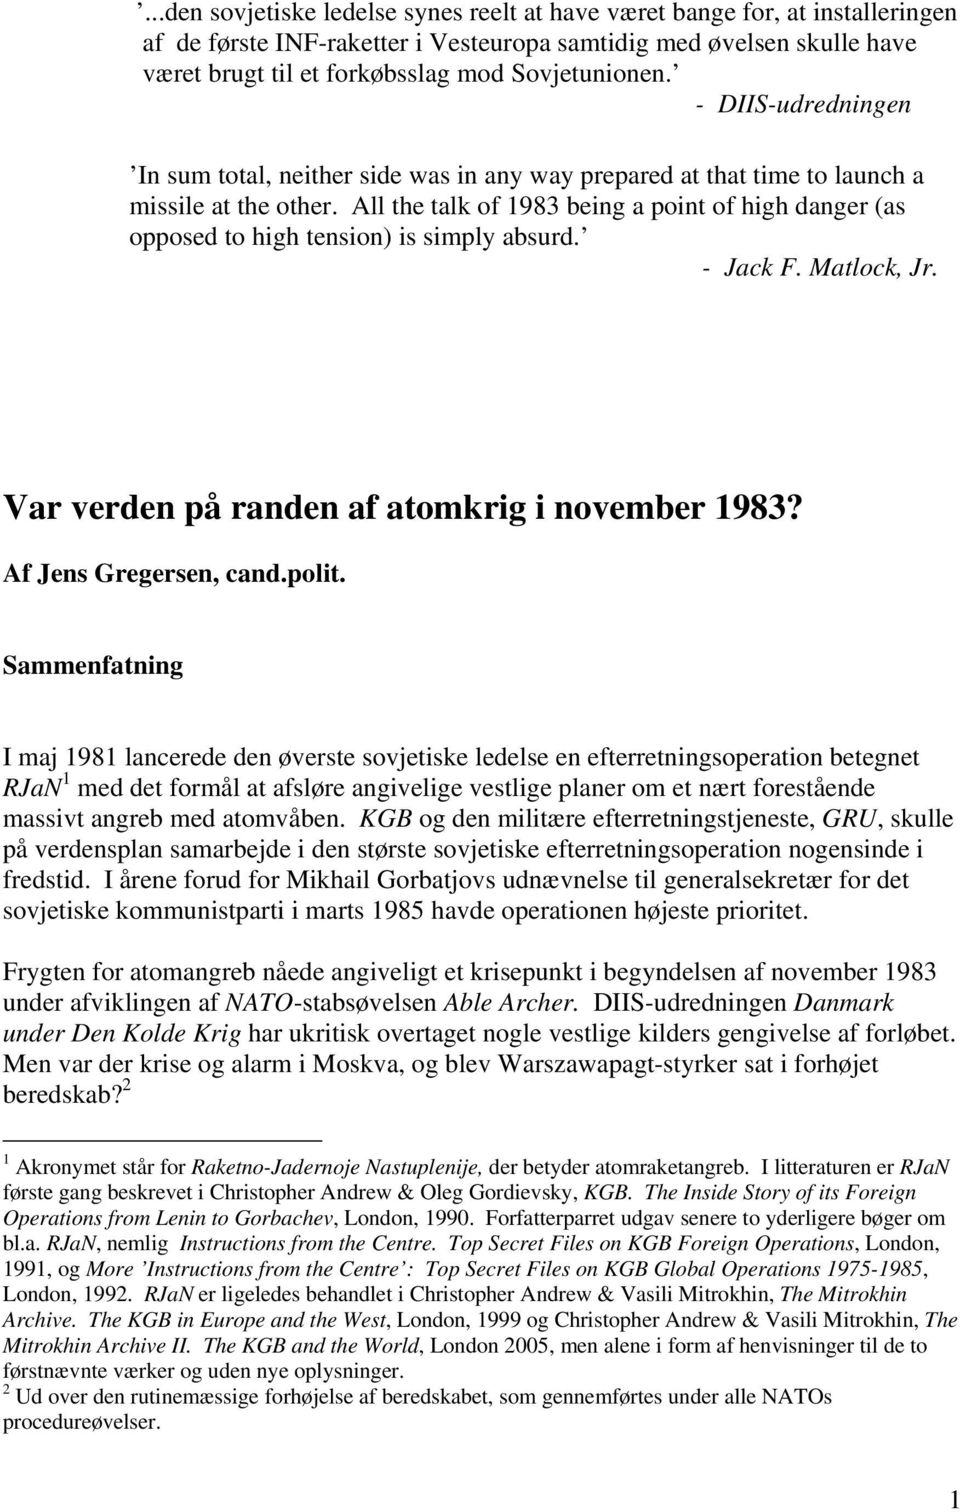 All the talk of 1983 being a point of high danger (as opposed to high tension) is simply absurd. - Jack F. Matlock, Jr. Var verden på randen af atomkrig i november 1983? Af Jens Gregersen, cand.polit.